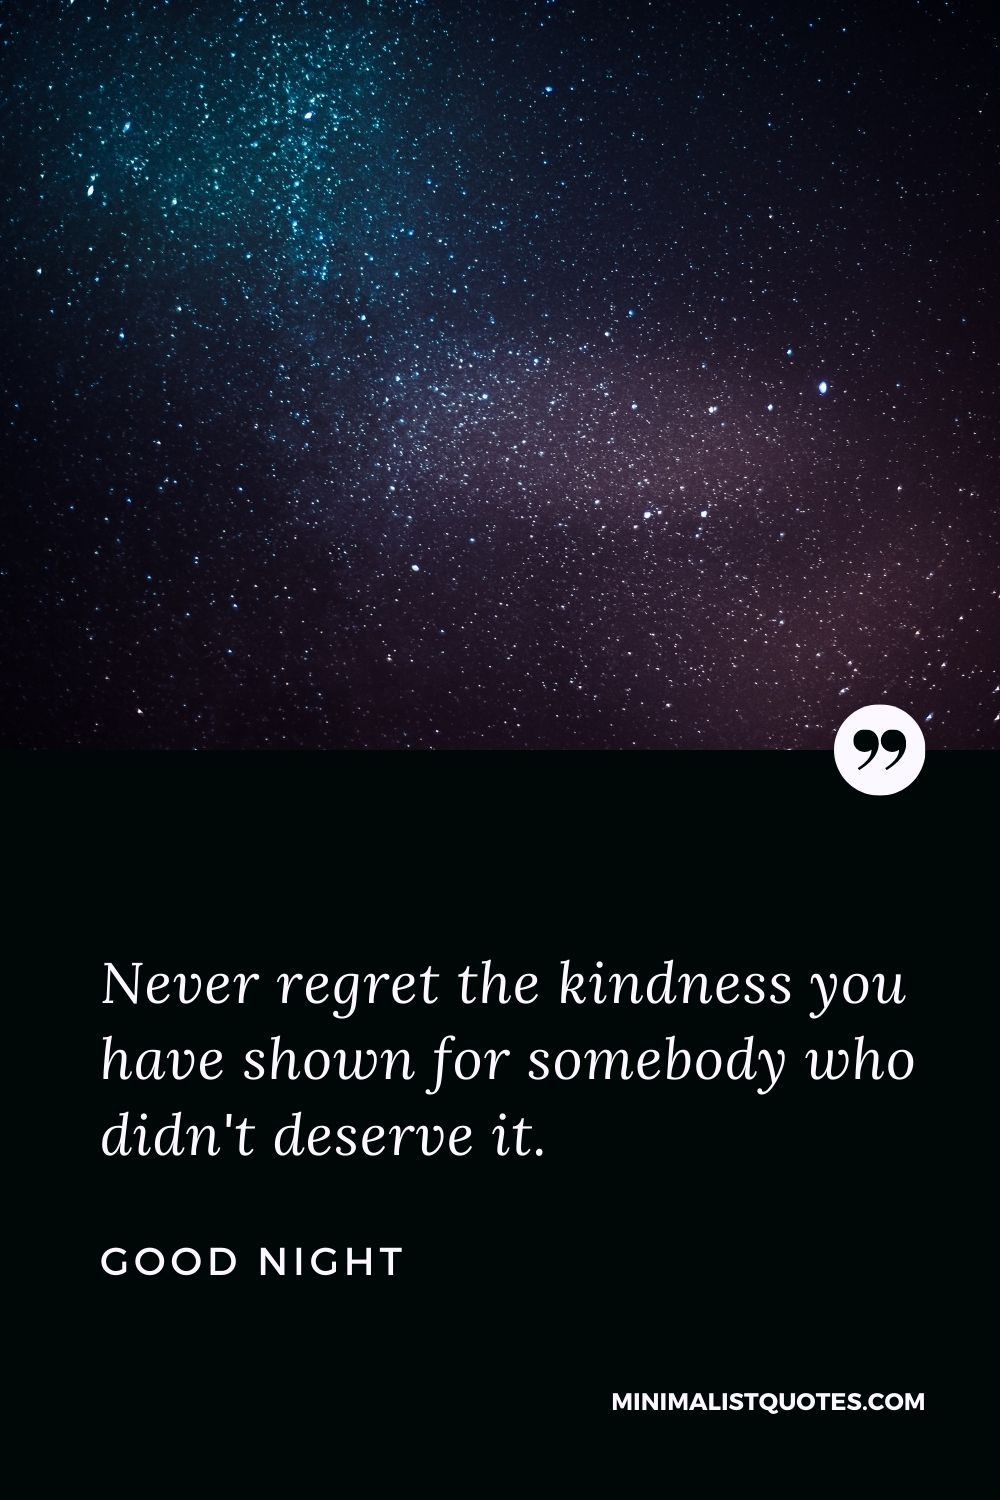 Never regret the kindness you have shown for somebody who didn't ...